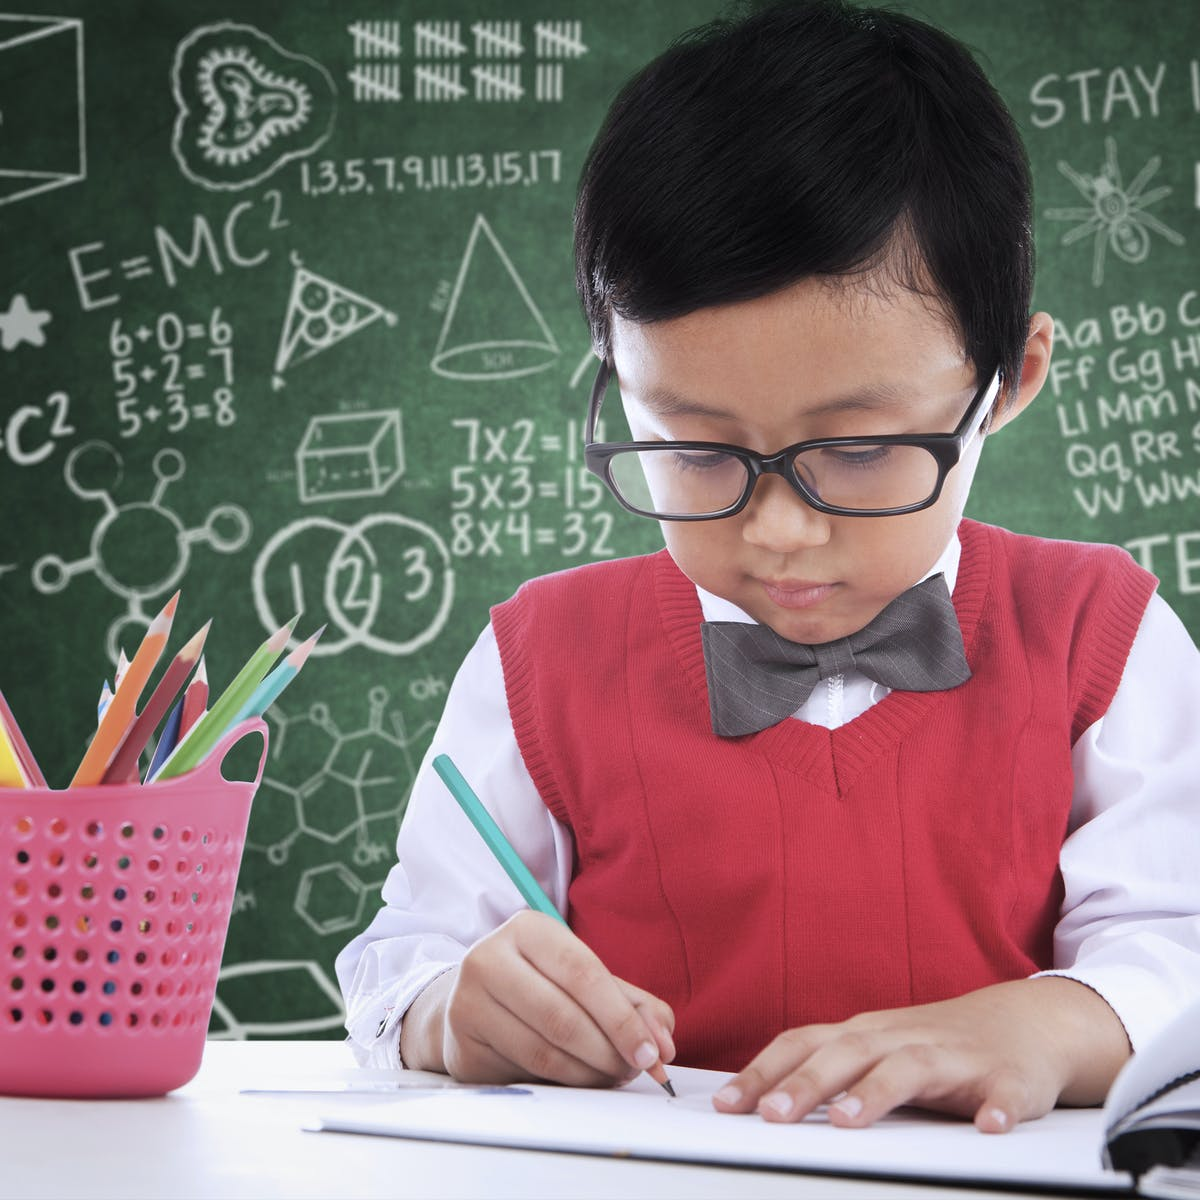 What is the secret to being good at maths?